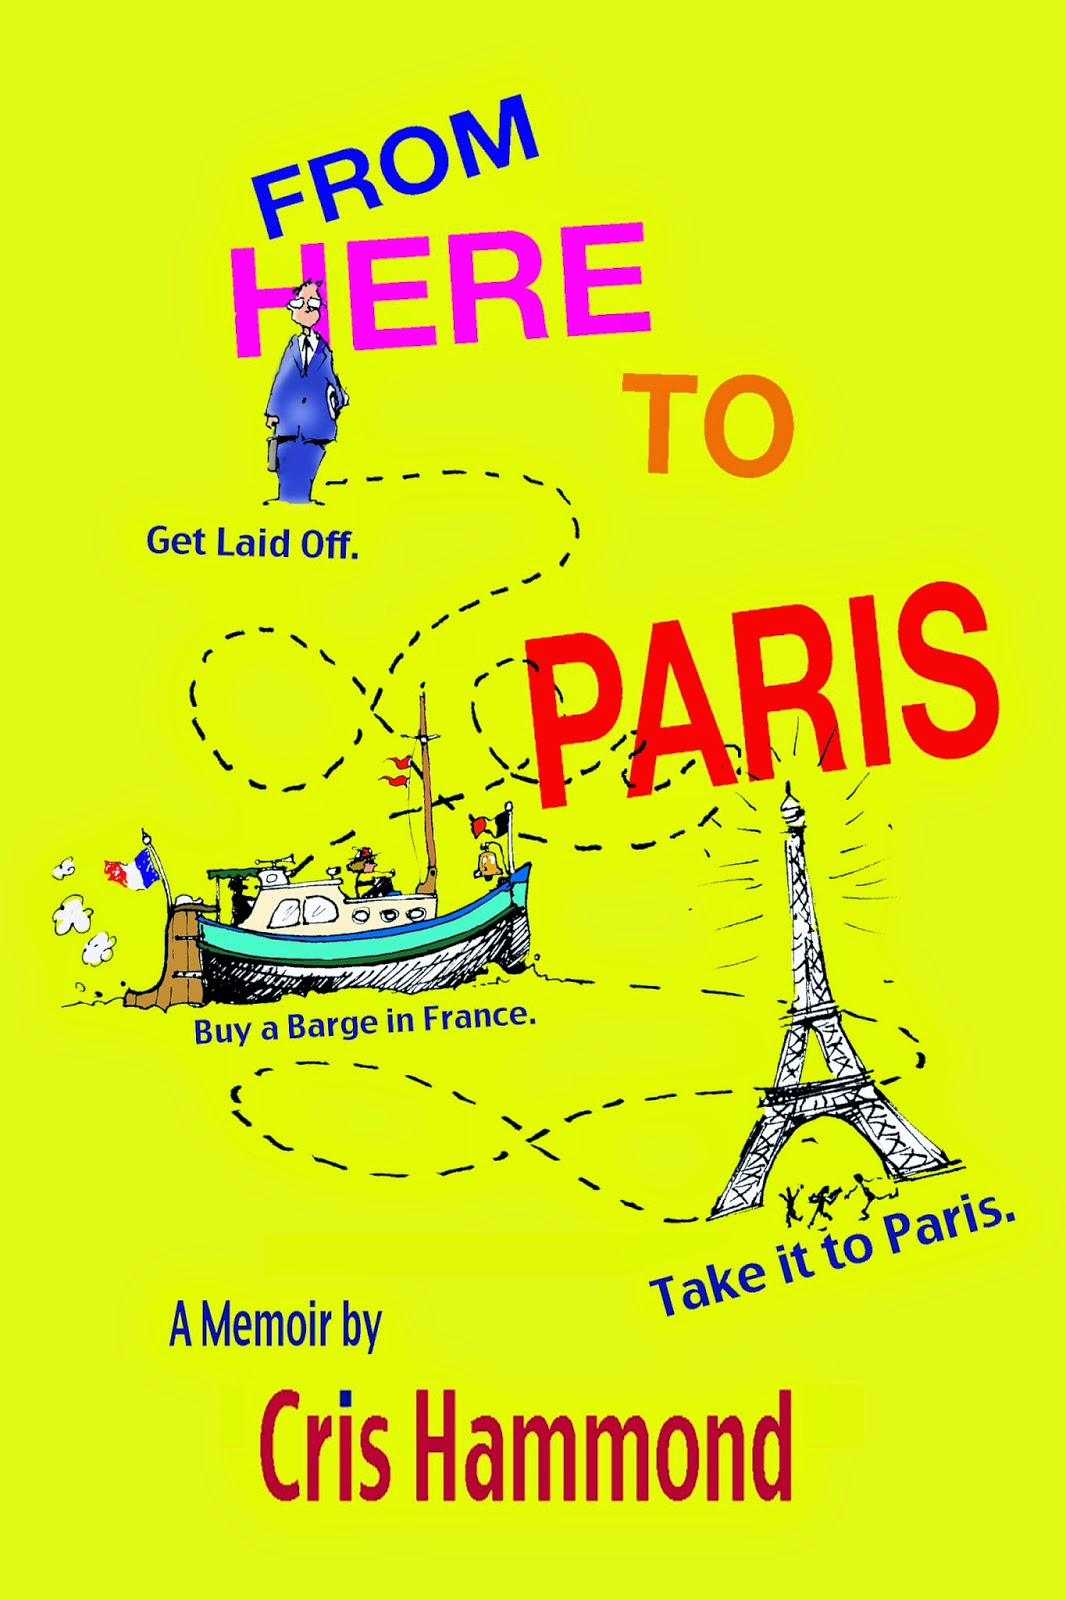 French Village Diaries France Book Tours review From Here To Paris Cris Hammond